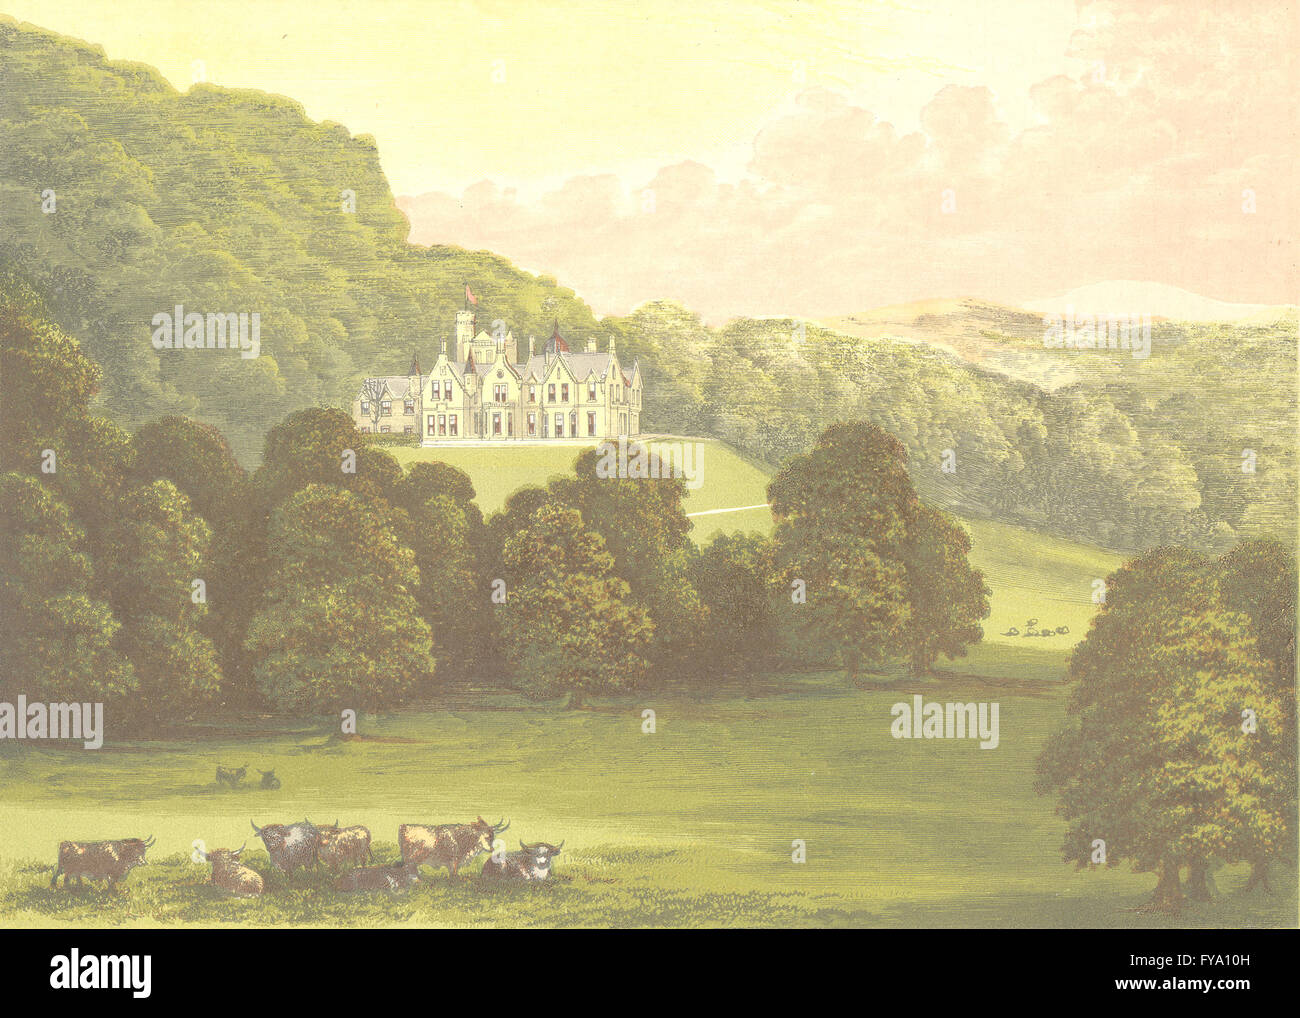 PHILIPHAUGH, Selkirk, Selkirkshire (Murray, Baronet), antique print 1891 - Stock Image